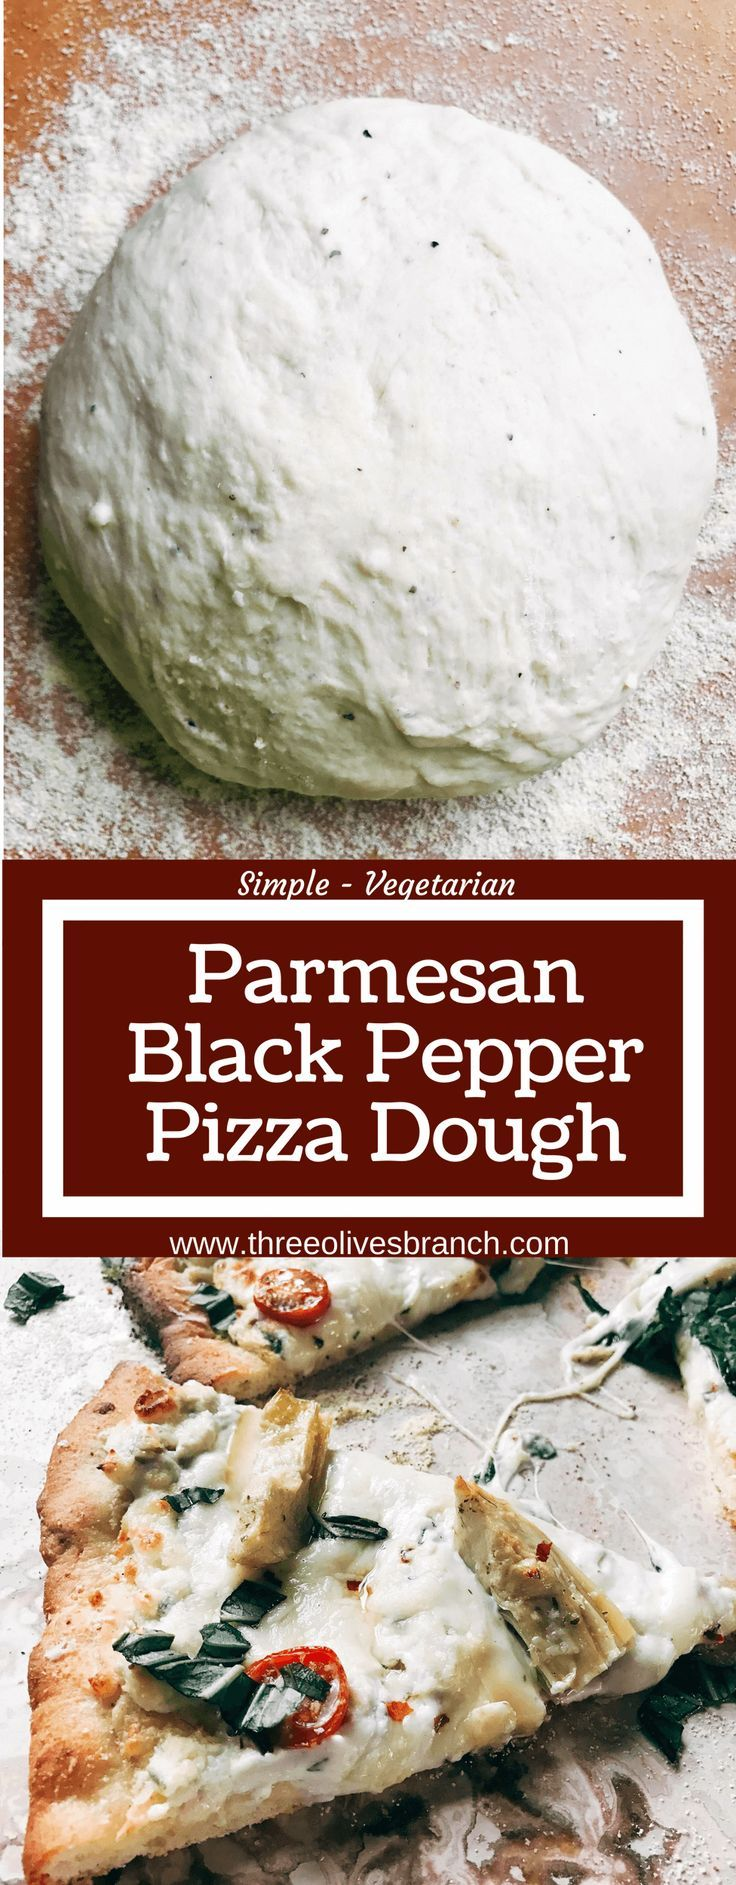 "Homemade pizza dough makes every pizza special! This fresh dough is simple and can be made in advance for a quick pizza night. Freezes well! Vegetarian, kid friendly, and delicious. Makes two 12"" thin pizza crusts. Parmesan Black Pepper Pizza Dough 